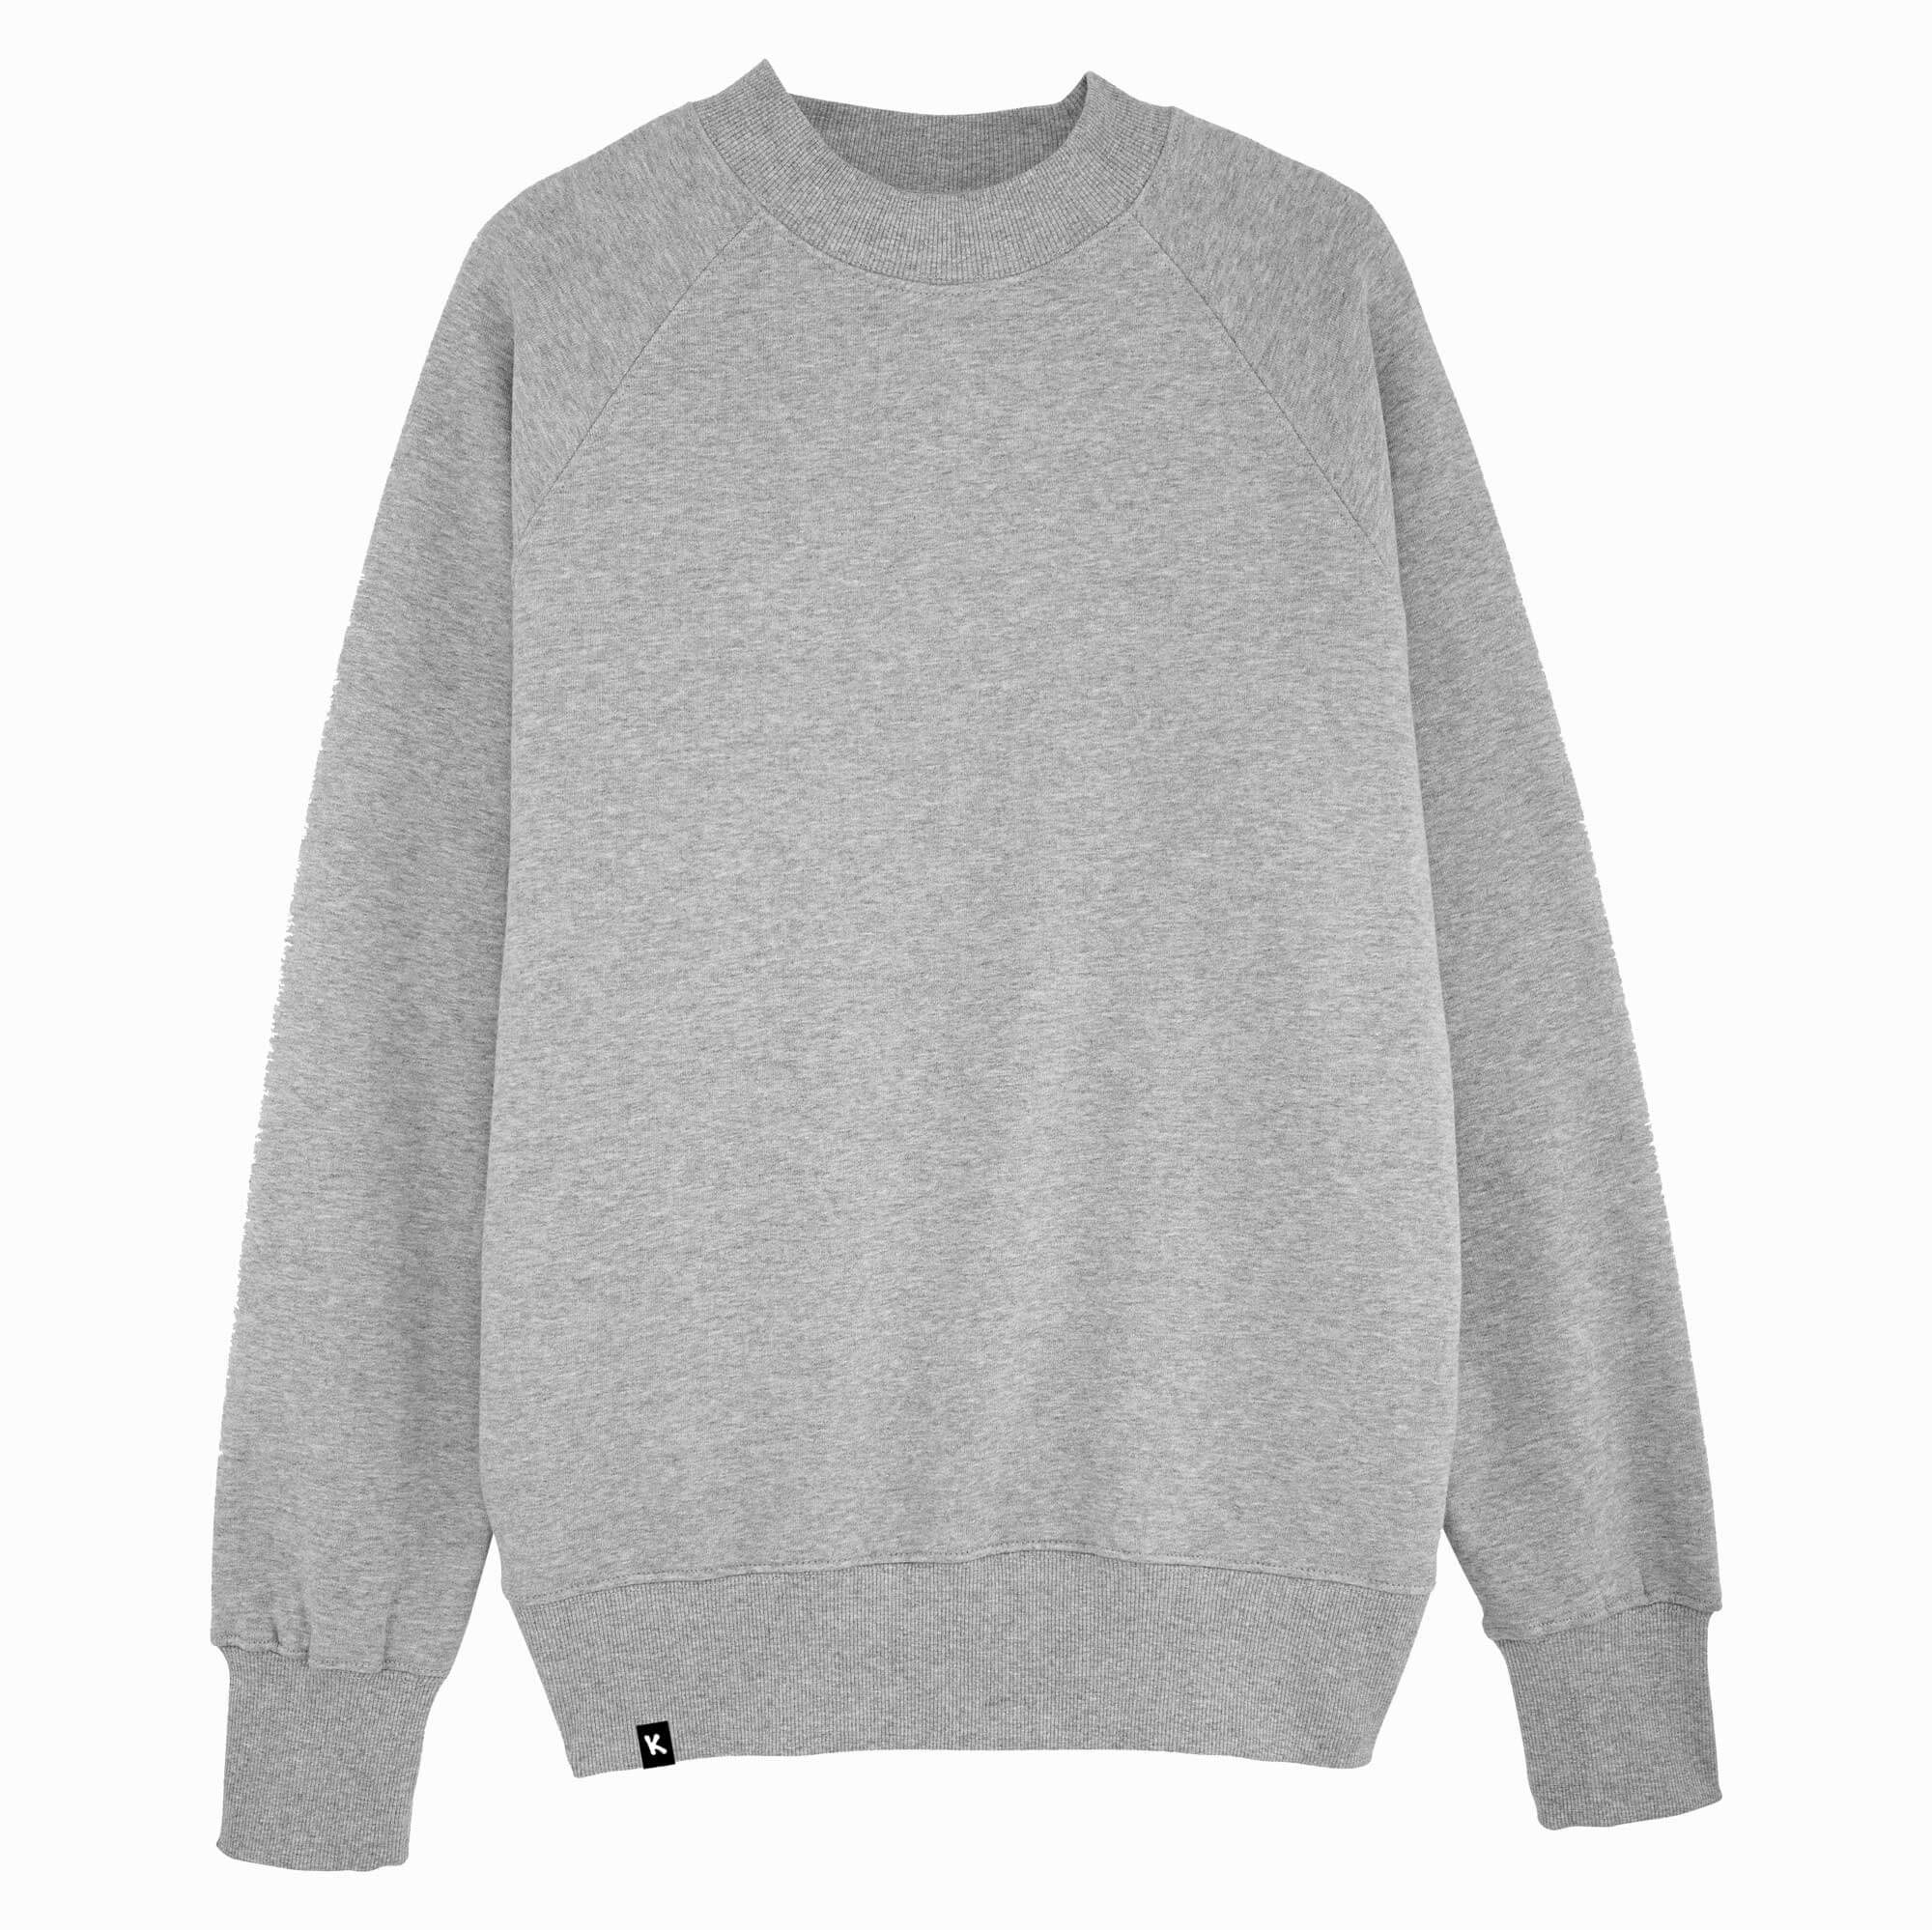 Krush Crewneck grey